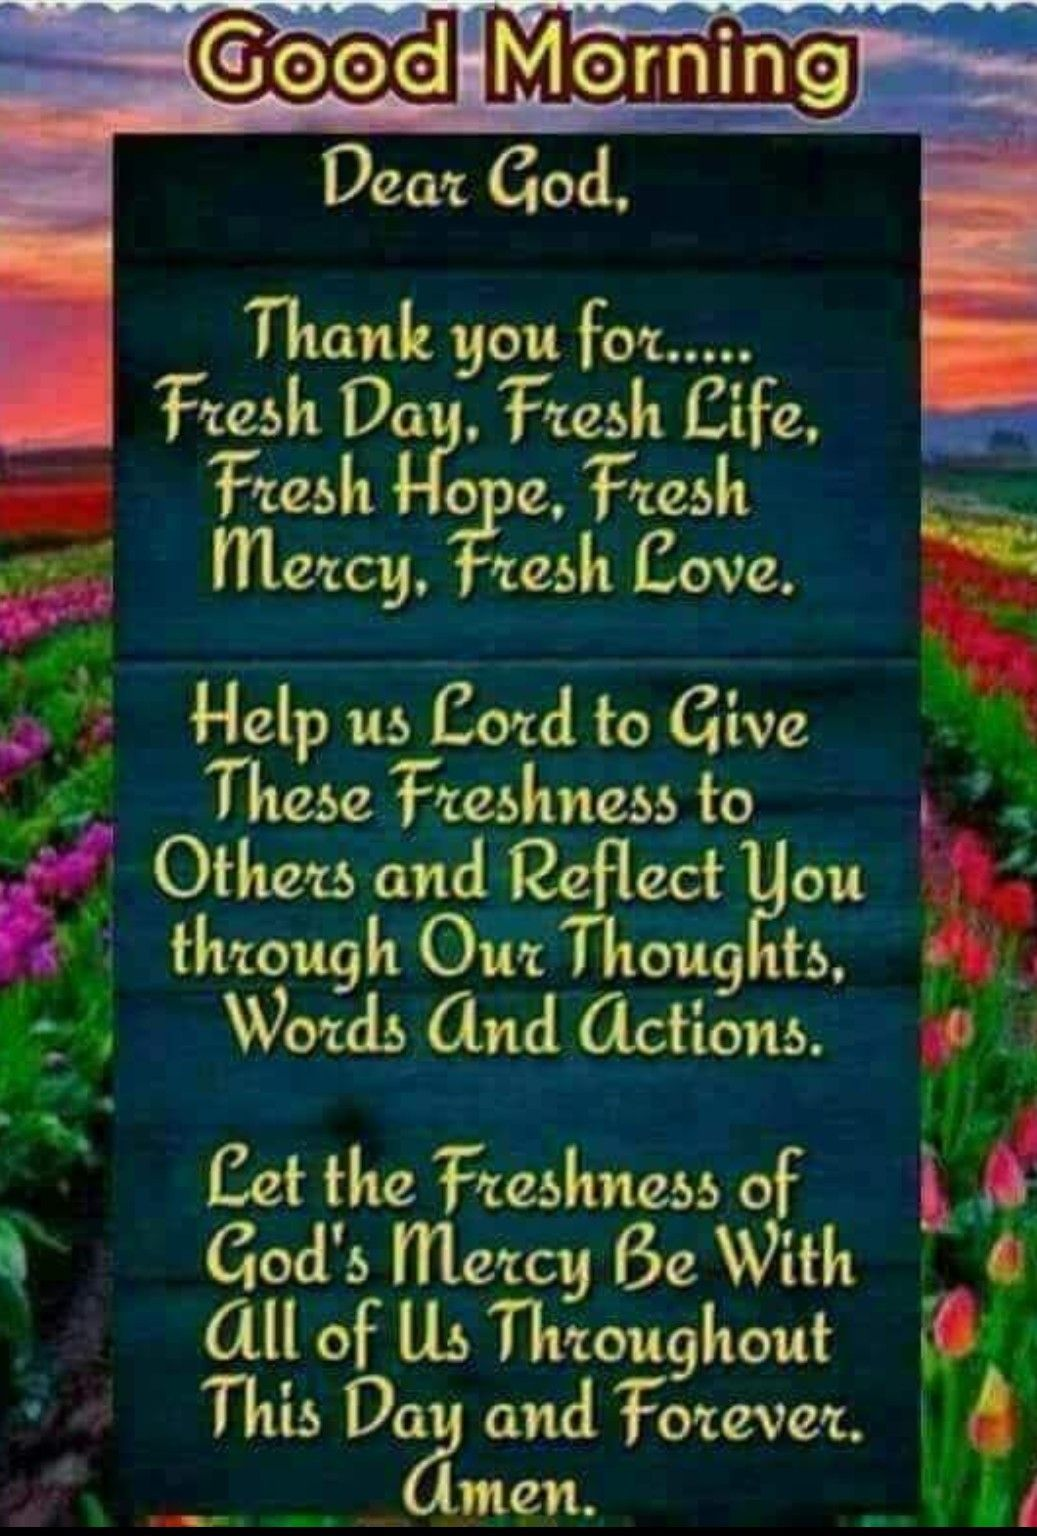 Pin by Summer Smart on BLESSINGS MORNINGS in 2020 (With